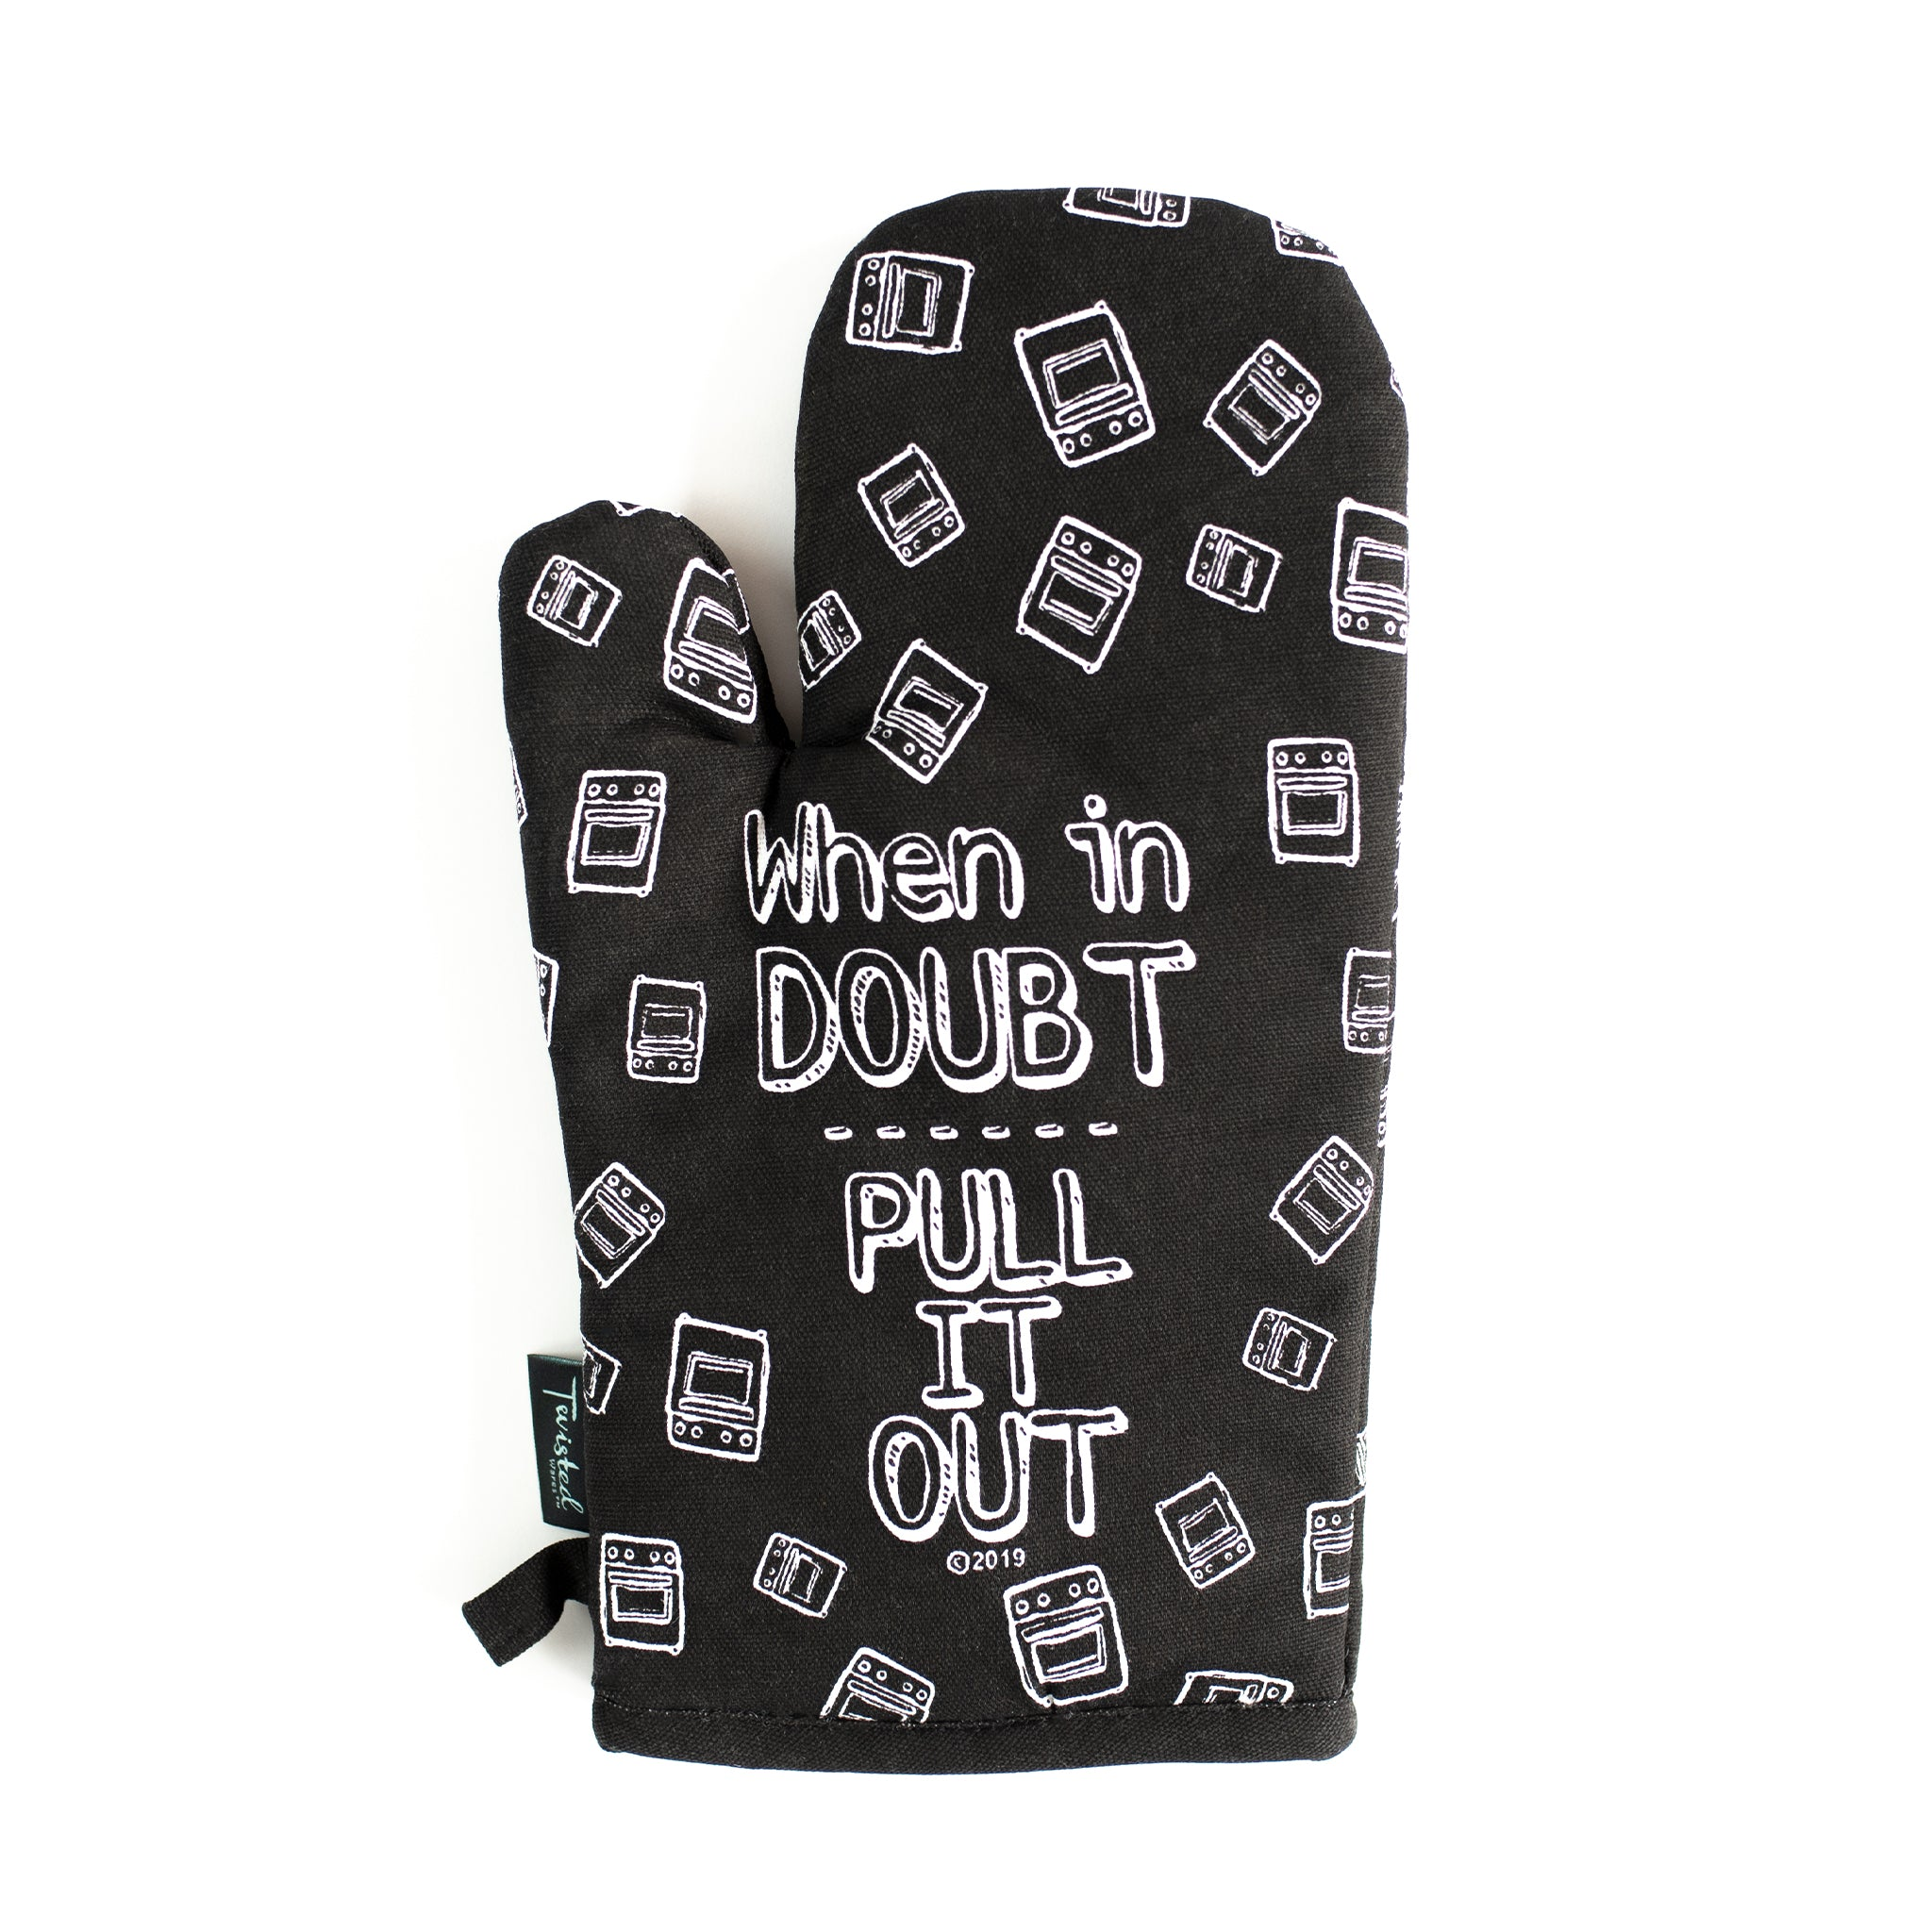 When In Doubt, Pull It Out Oven Mitt